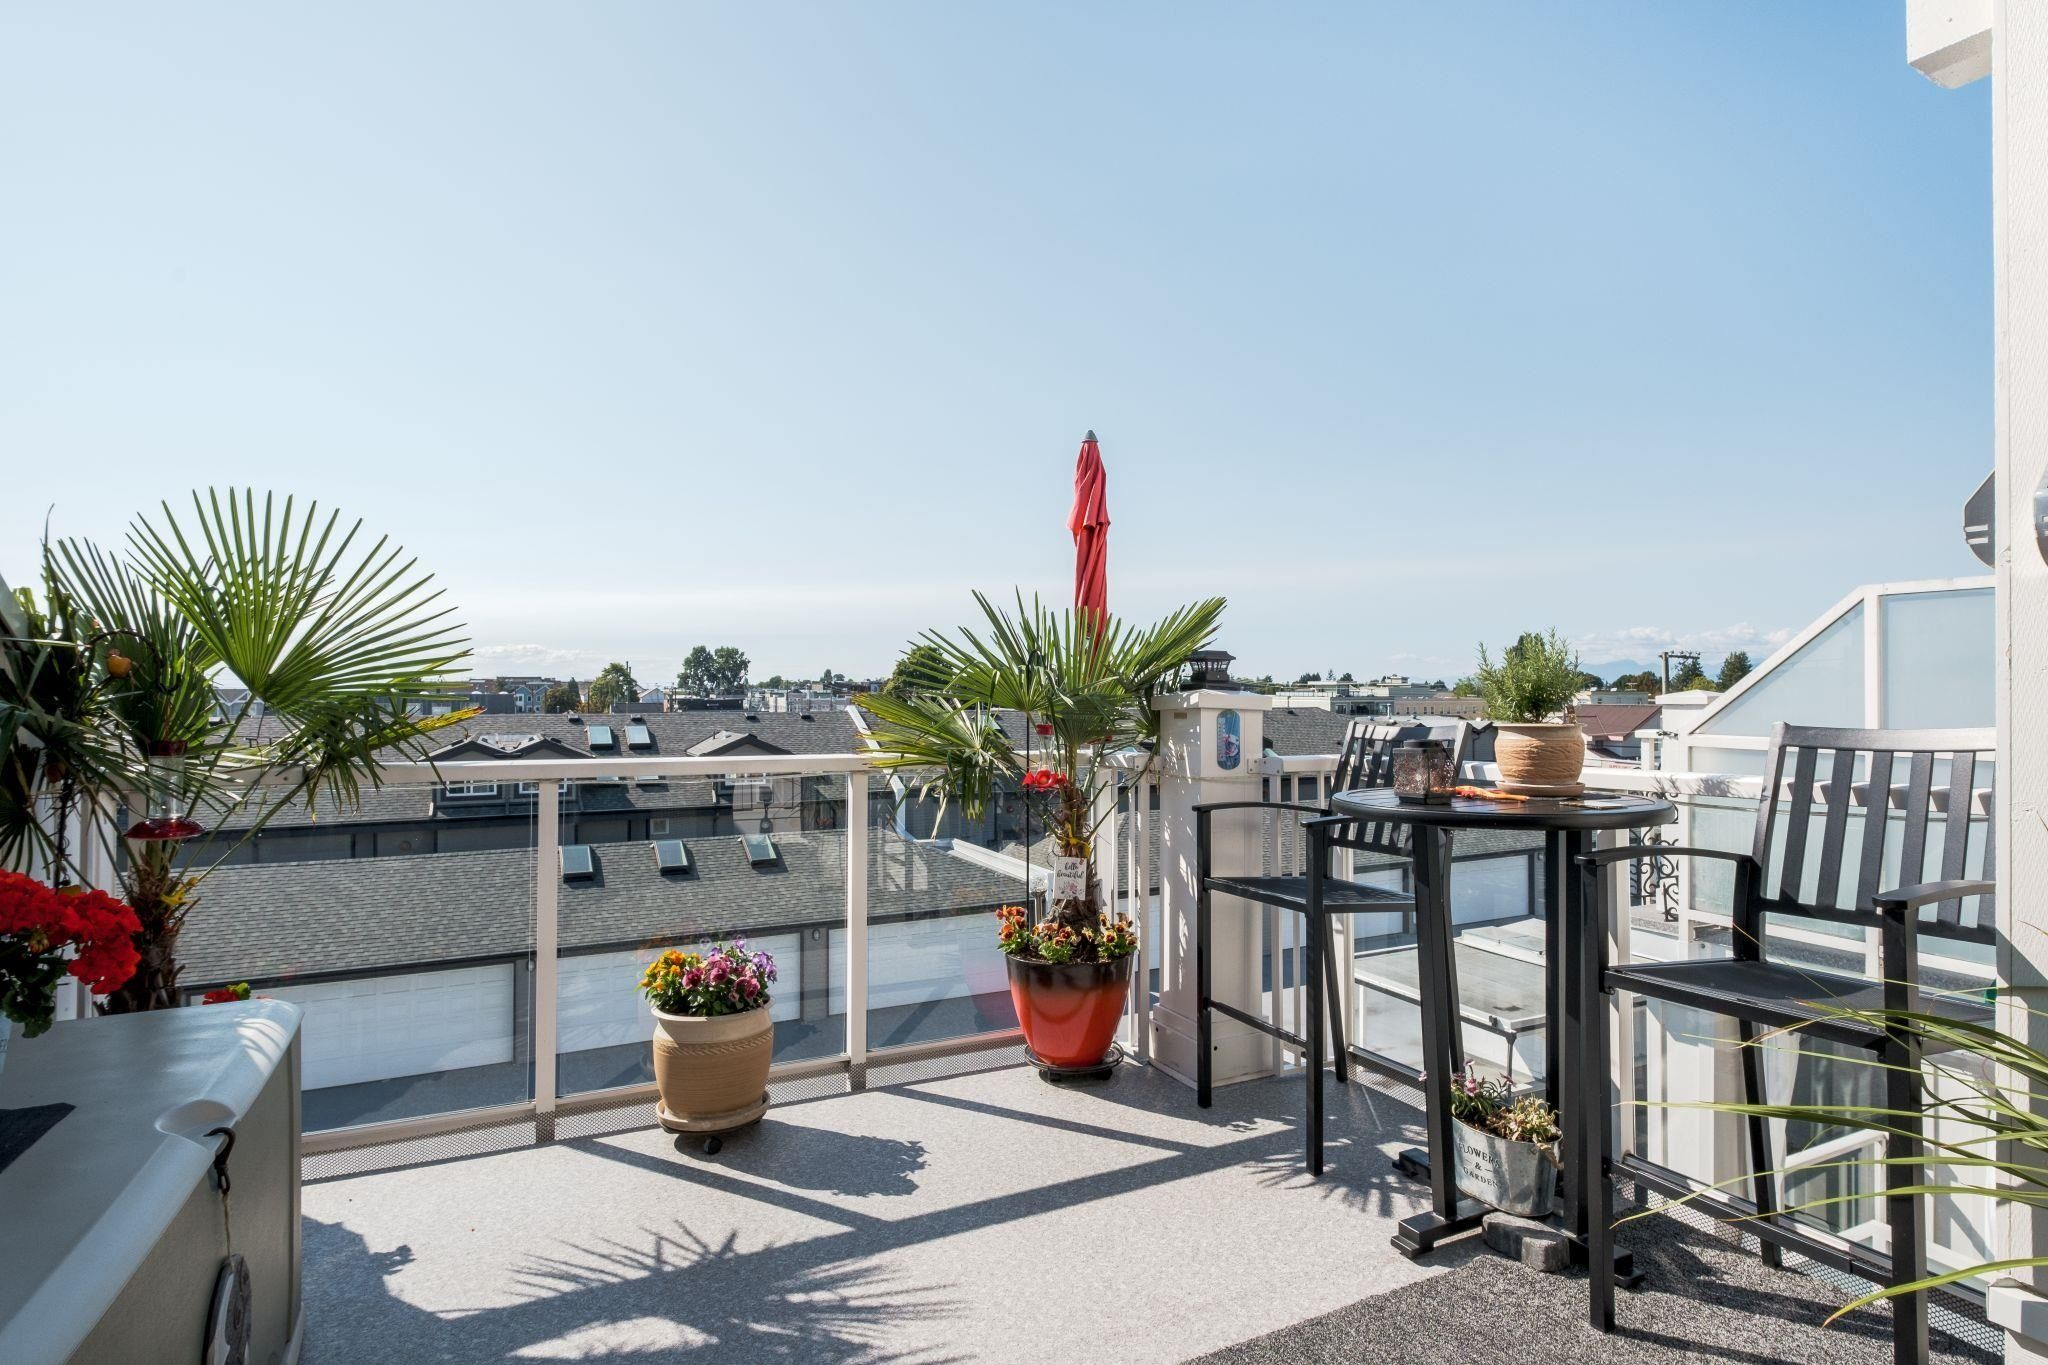 """Main Photo: 411 4280 MONCTON Street in Richmond: Steveston South Condo for sale in """"The Village at Imperial Landing"""" : MLS®# R2614306"""